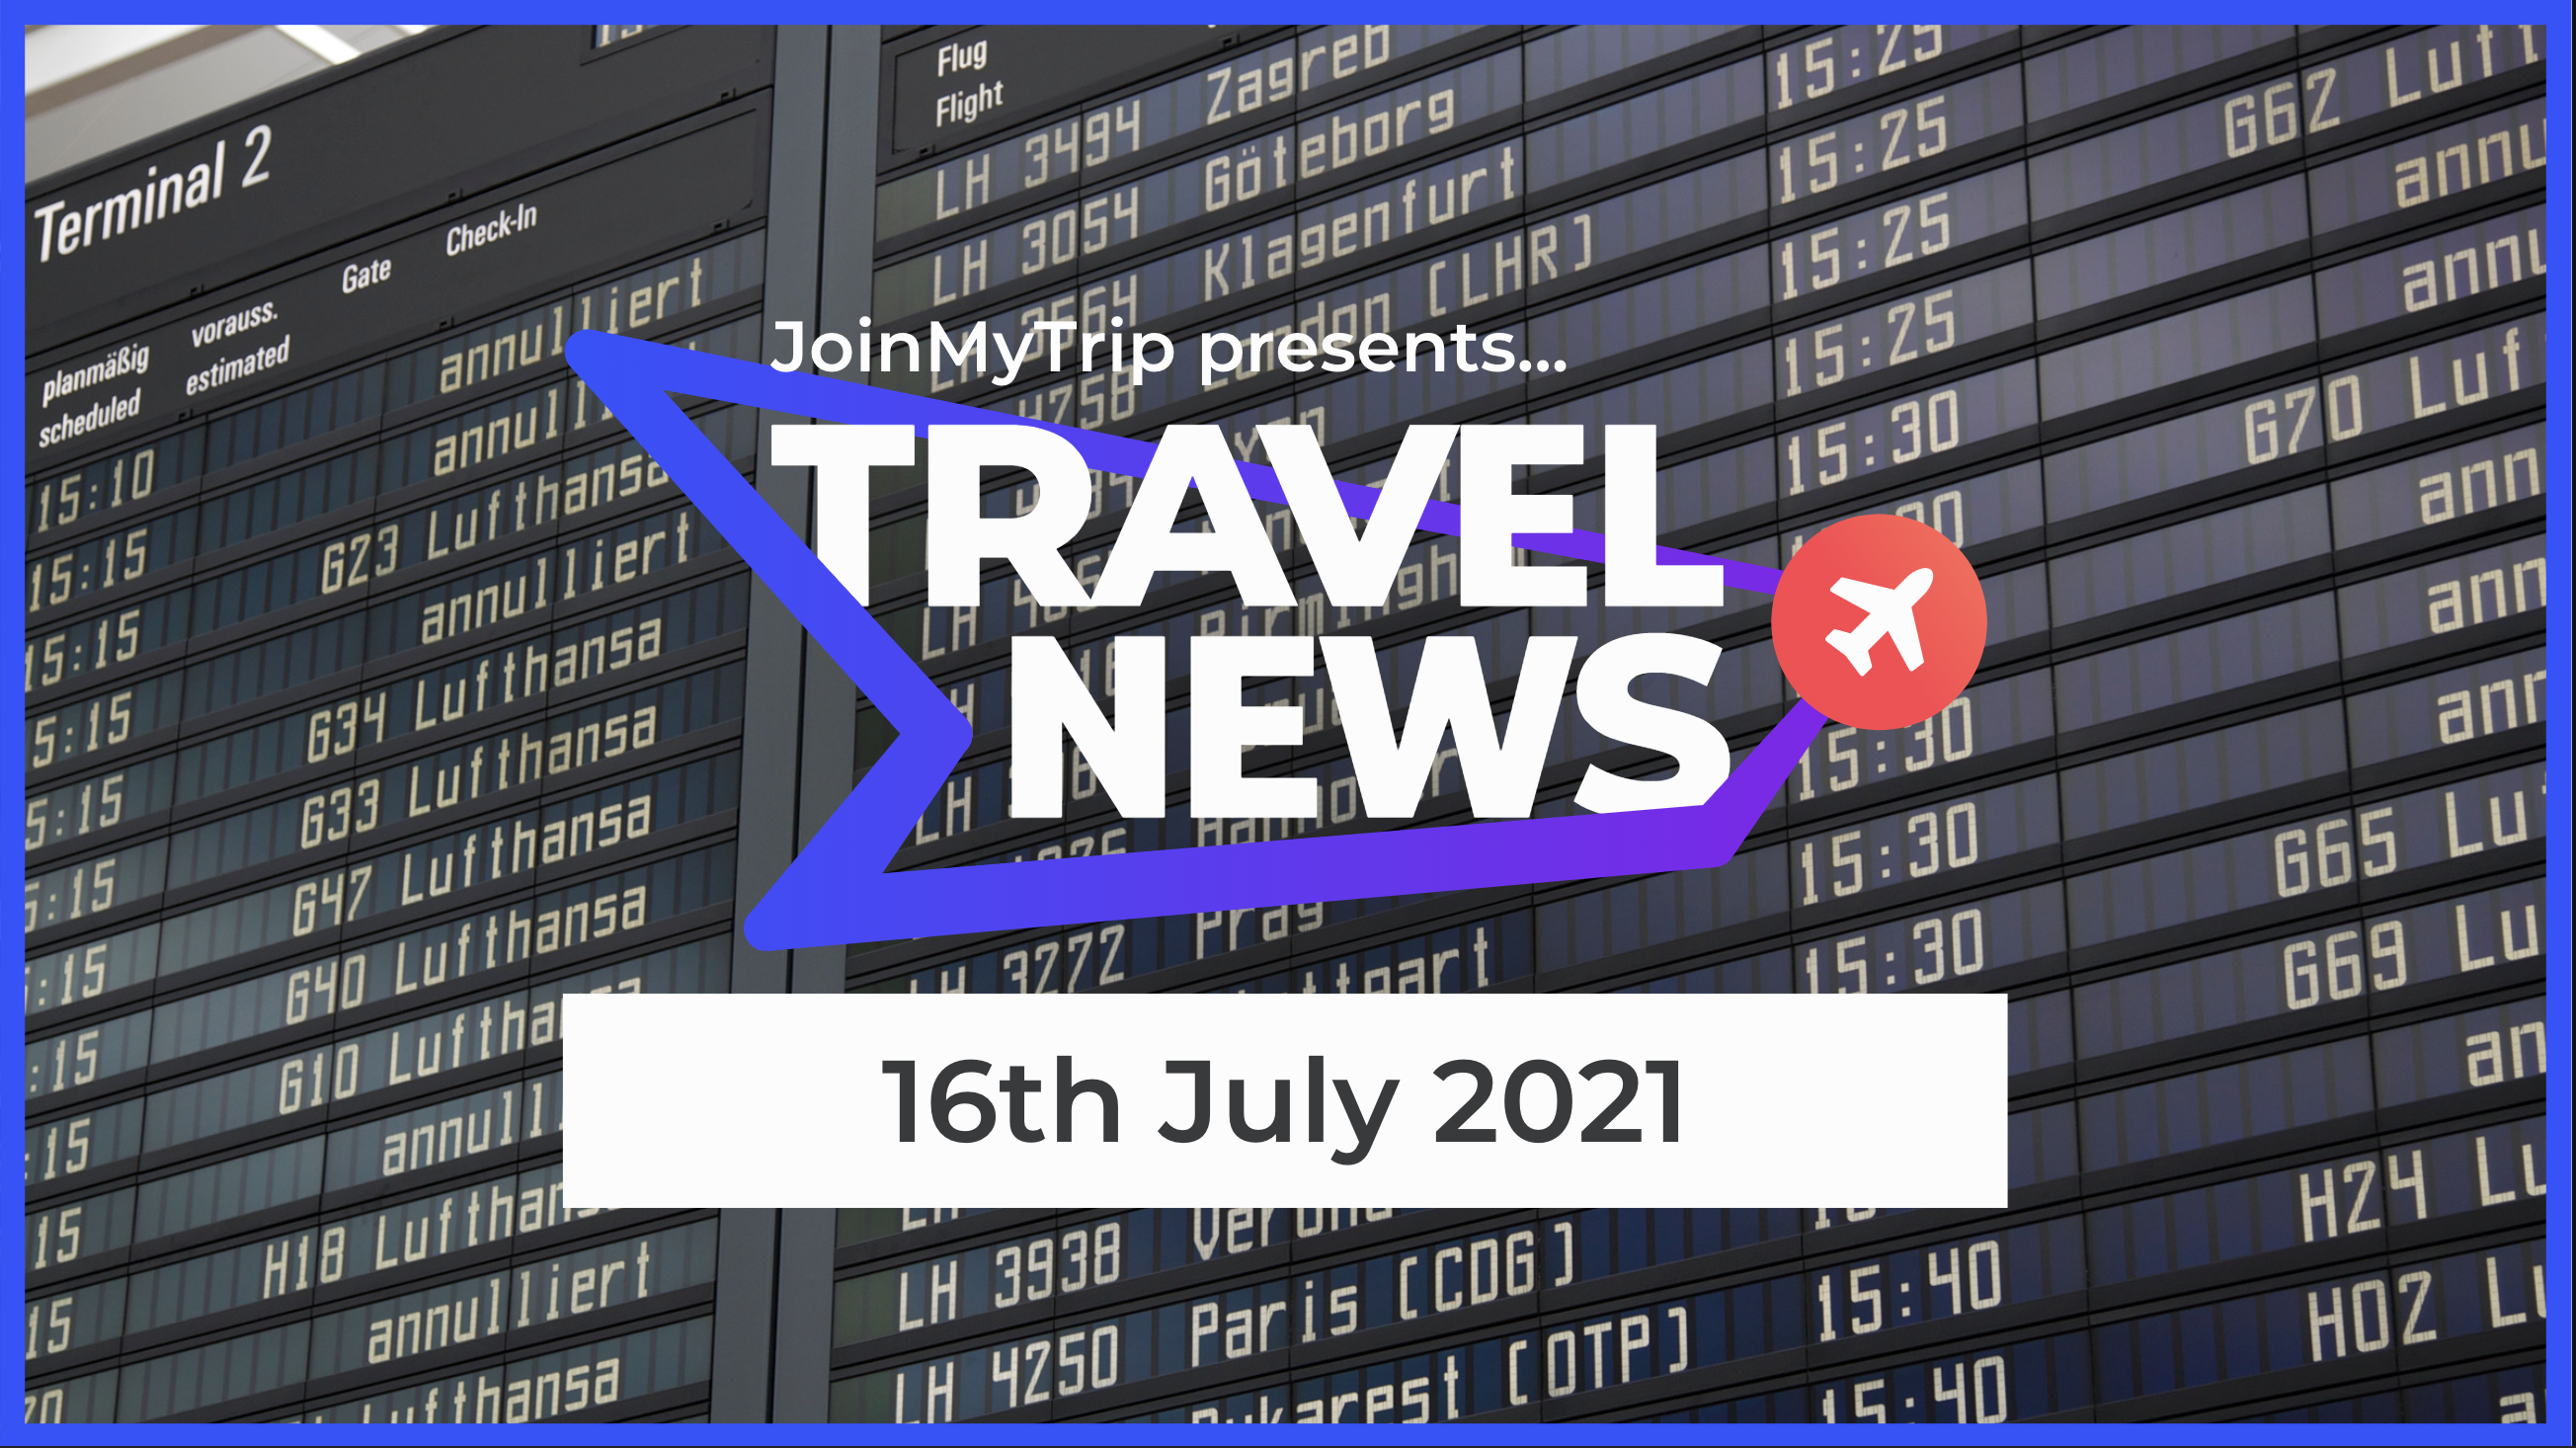 Travel News on 16th of July 2021